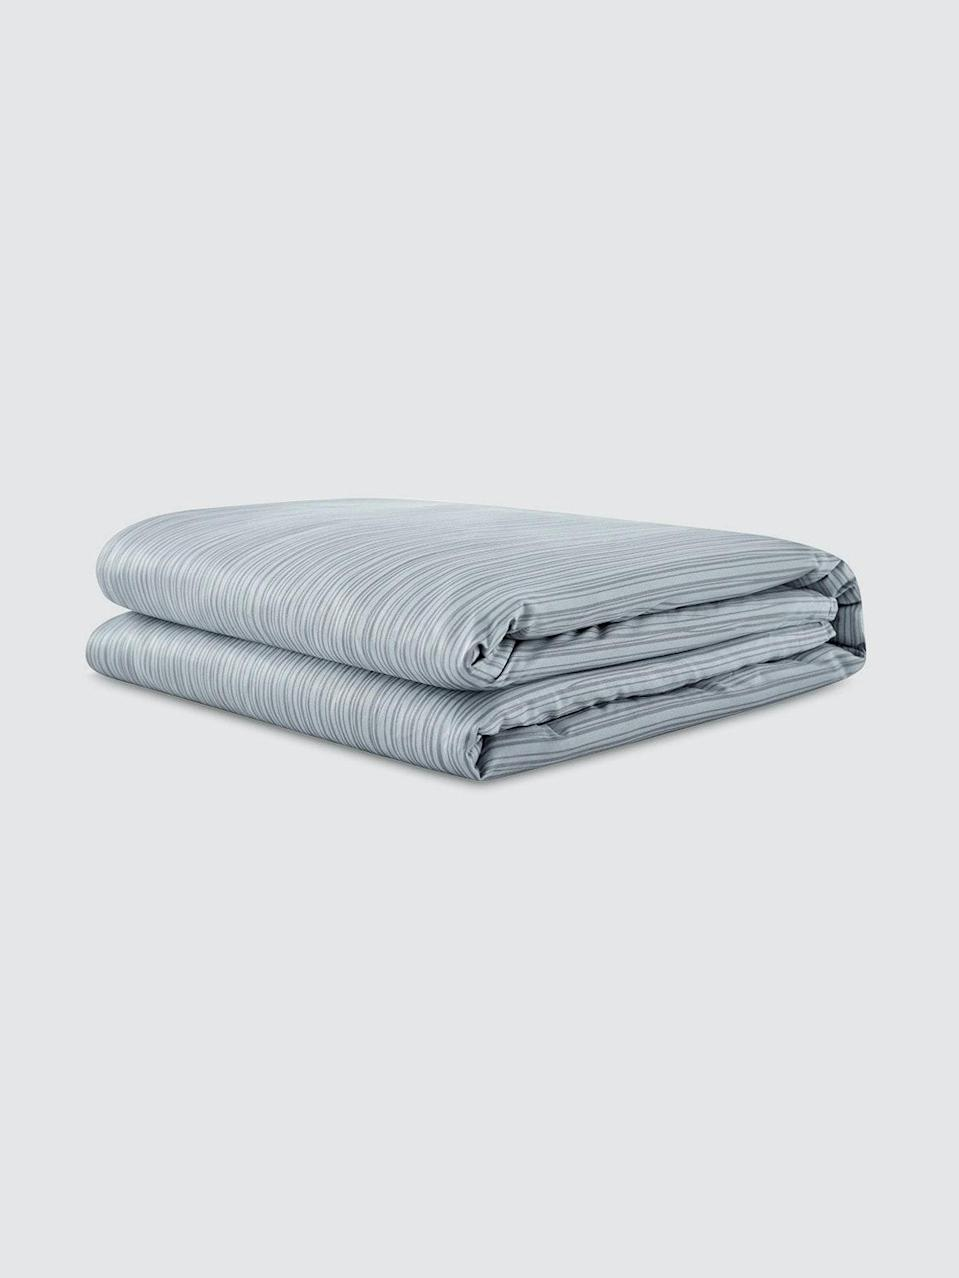 """<br><br><strong>Gravity</strong> Cotton Weighted Blanket, $, available at <a href=""""https://go.skimresources.com/?id=30283X879131&url=https%3A%2F%2Fshop-links.co%2F1735353107302370994"""" rel=""""nofollow noopener"""" target=""""_blank"""" data-ylk=""""slk:Verishop"""" class=""""link rapid-noclick-resp"""">Verishop</a>"""